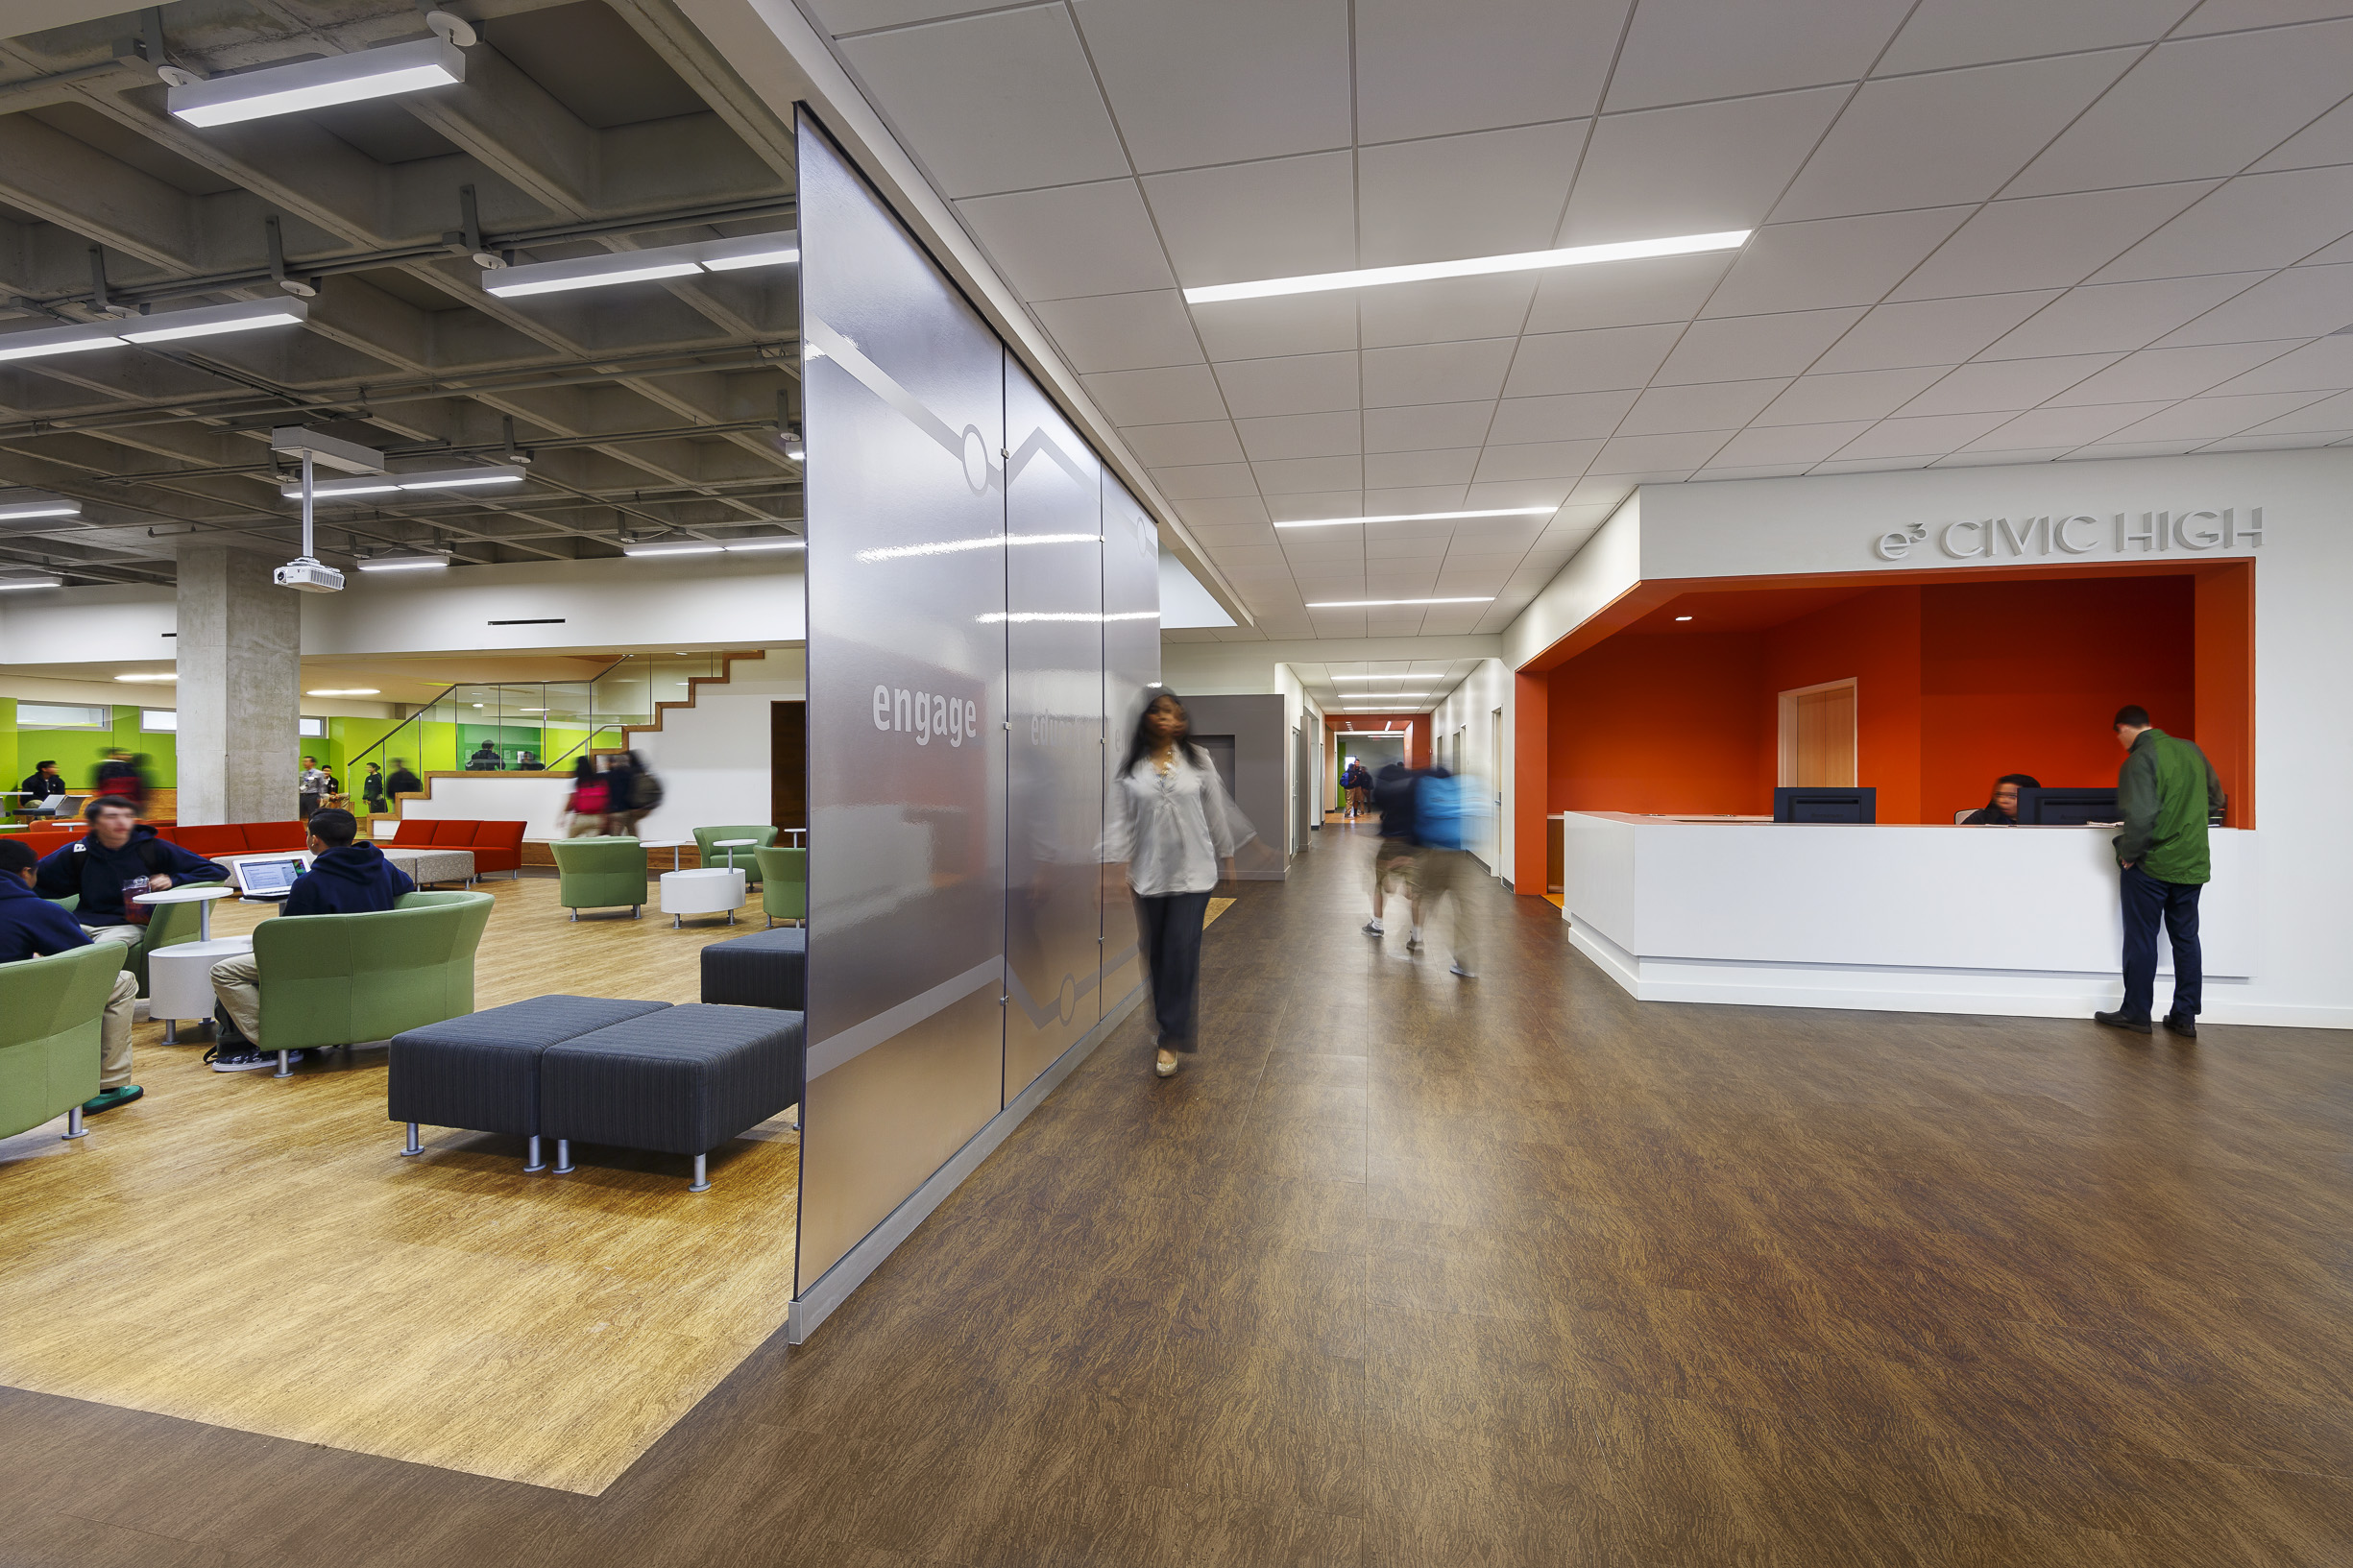 E3 Civic High | Architect Magazine | LPA Inc, San Diego, CA, USA,  Education, Interiors, Renovation/Remodel, Modern, LEED Gold , AIA    National Awards 2015, ...